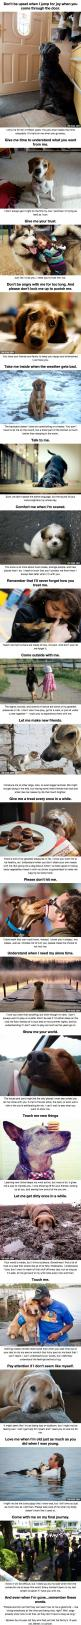 The 20 Important Facts Dog Lovers Must Never Forget: Doggie, Dog Owners, Dogs, Best Friends, Pet, So True, Puppy, Dog Lover Quote